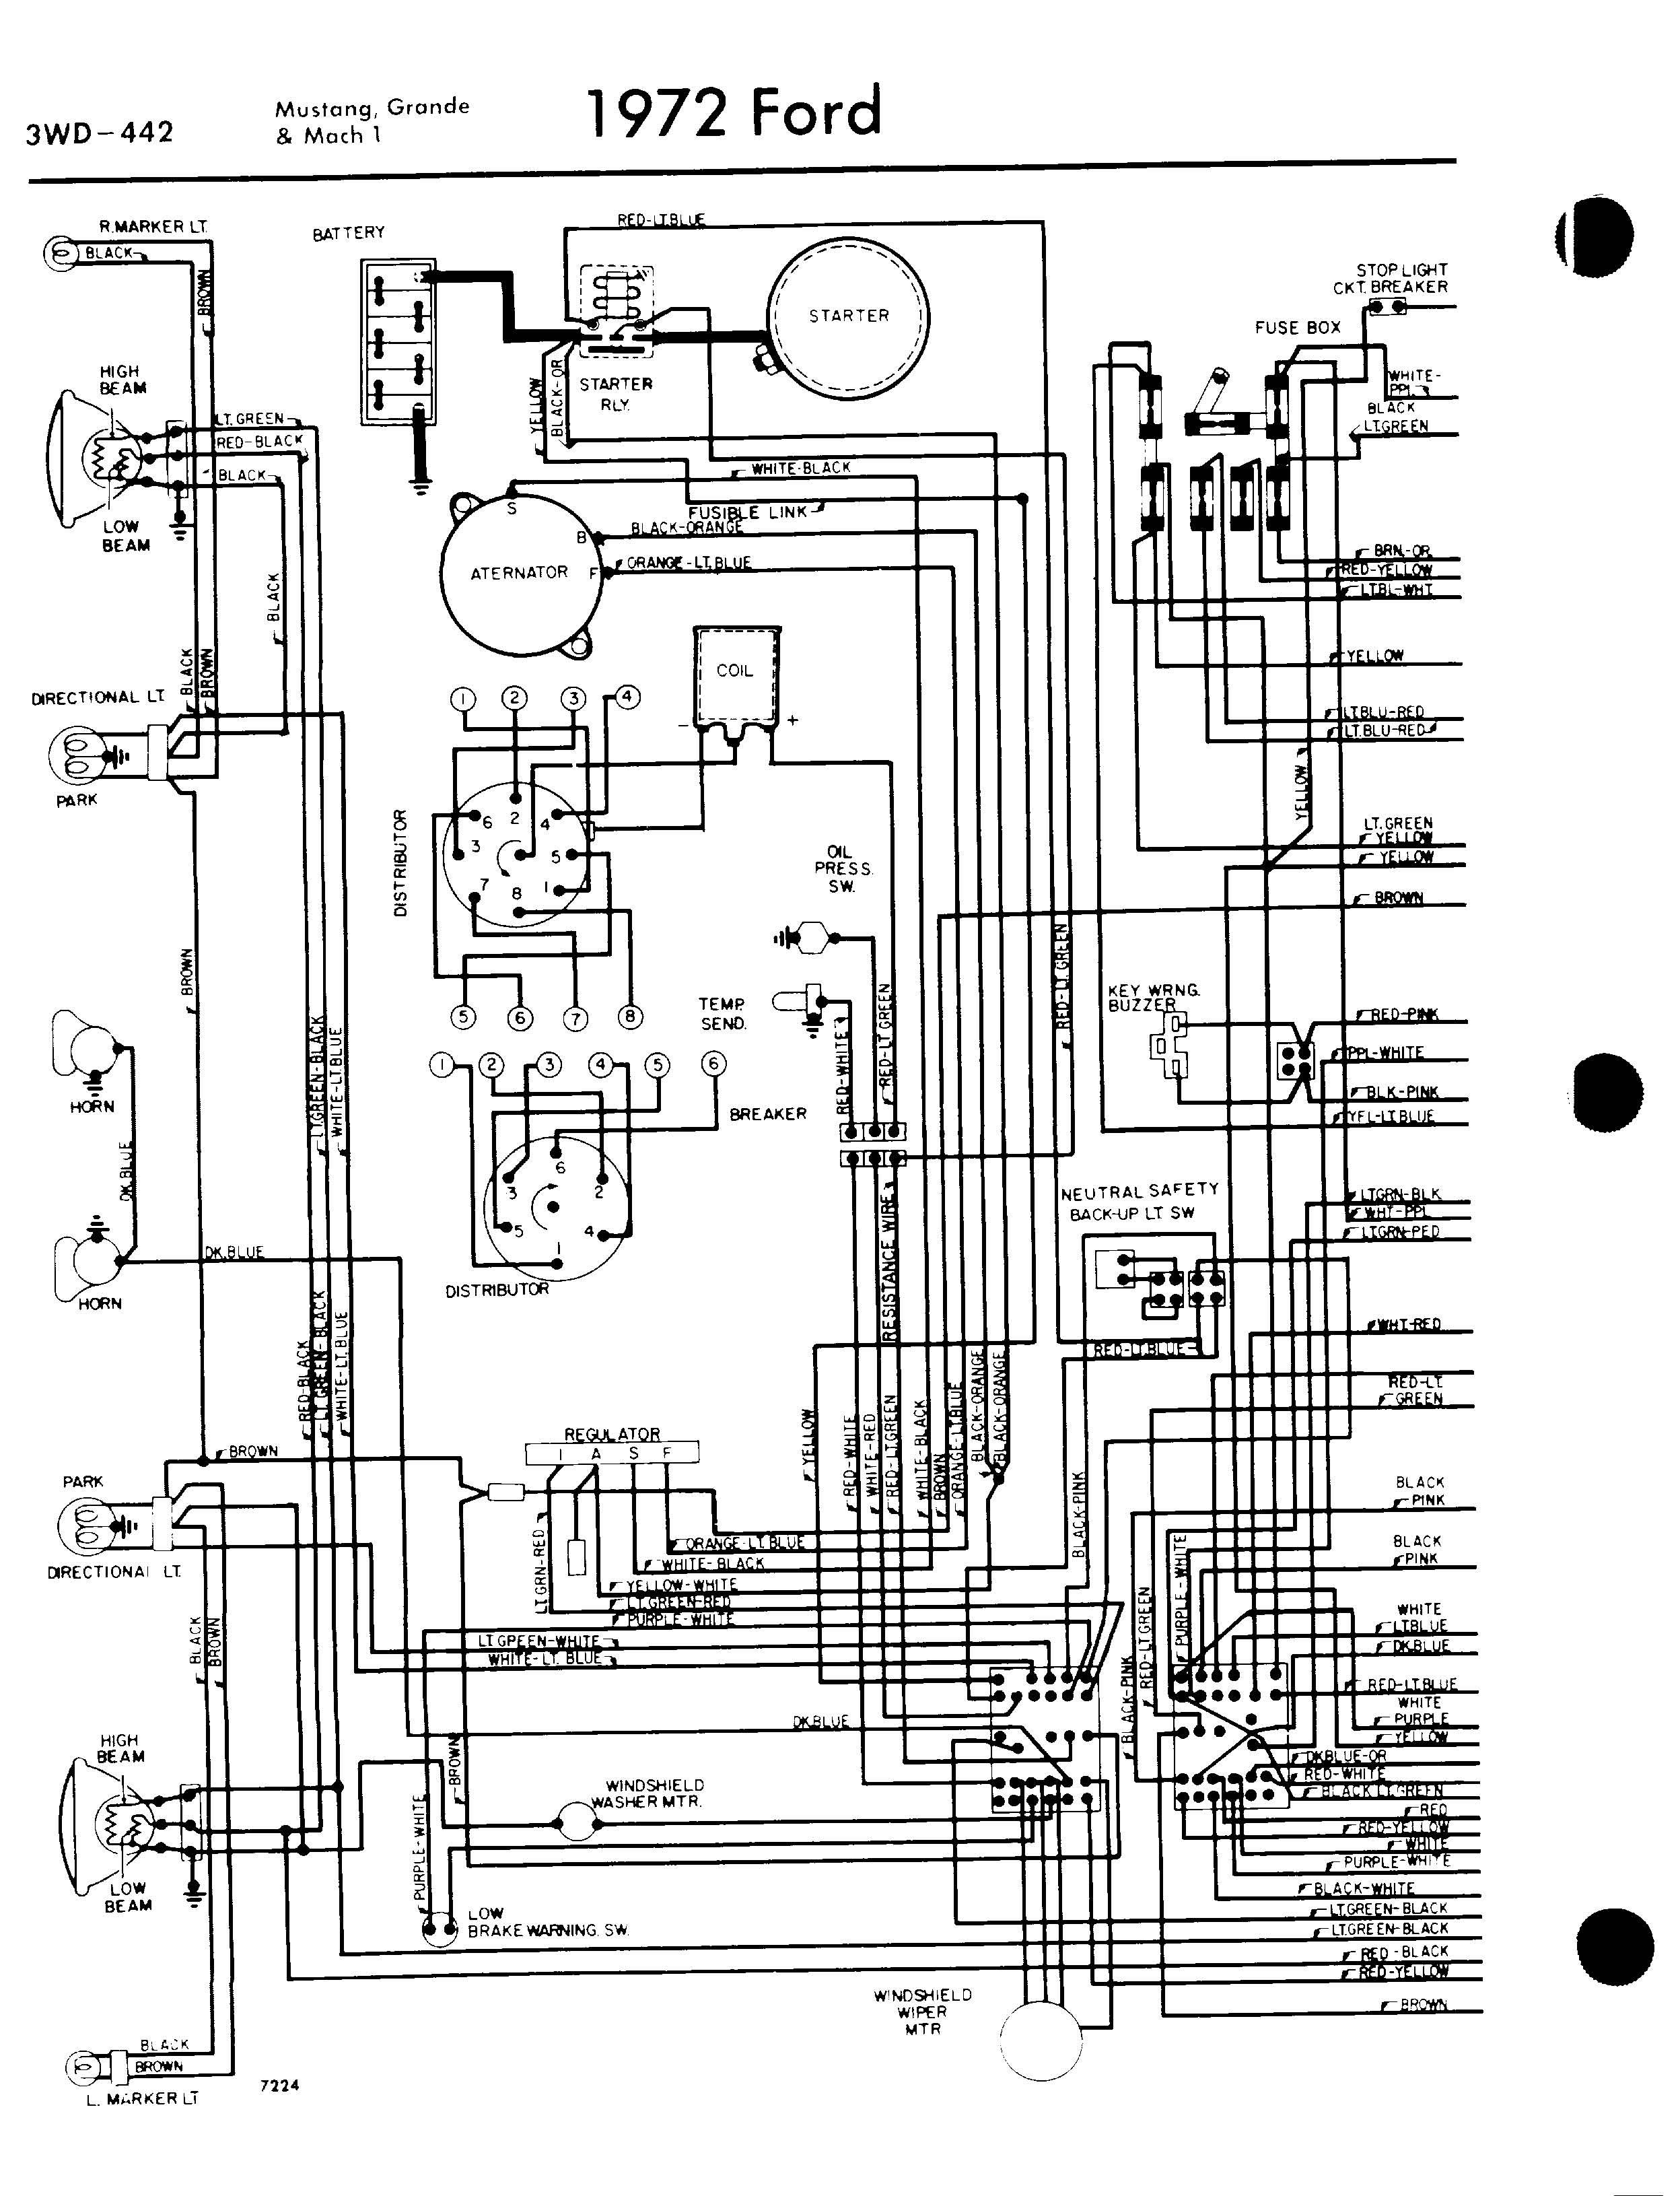 hight resolution of 1969 mercury wire diagrams wiring diagram blog1969 mercury cyclone wiring diagram wiring diagram 1968 mercury cyclone